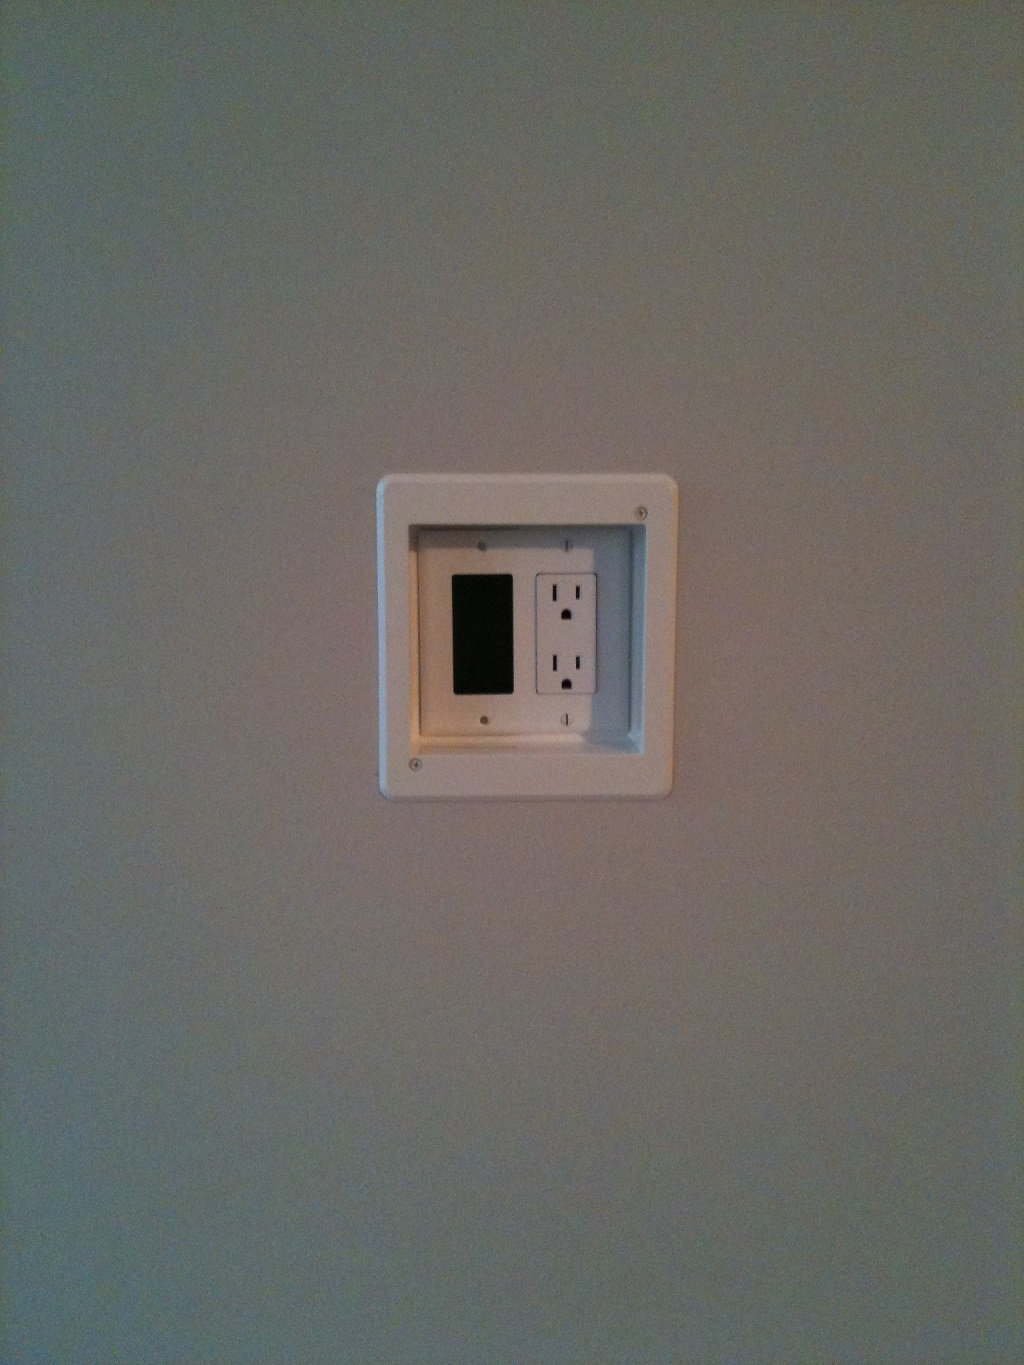 Tv Installations Central Nj Westfieldscotch Plains Smart House Wiring For